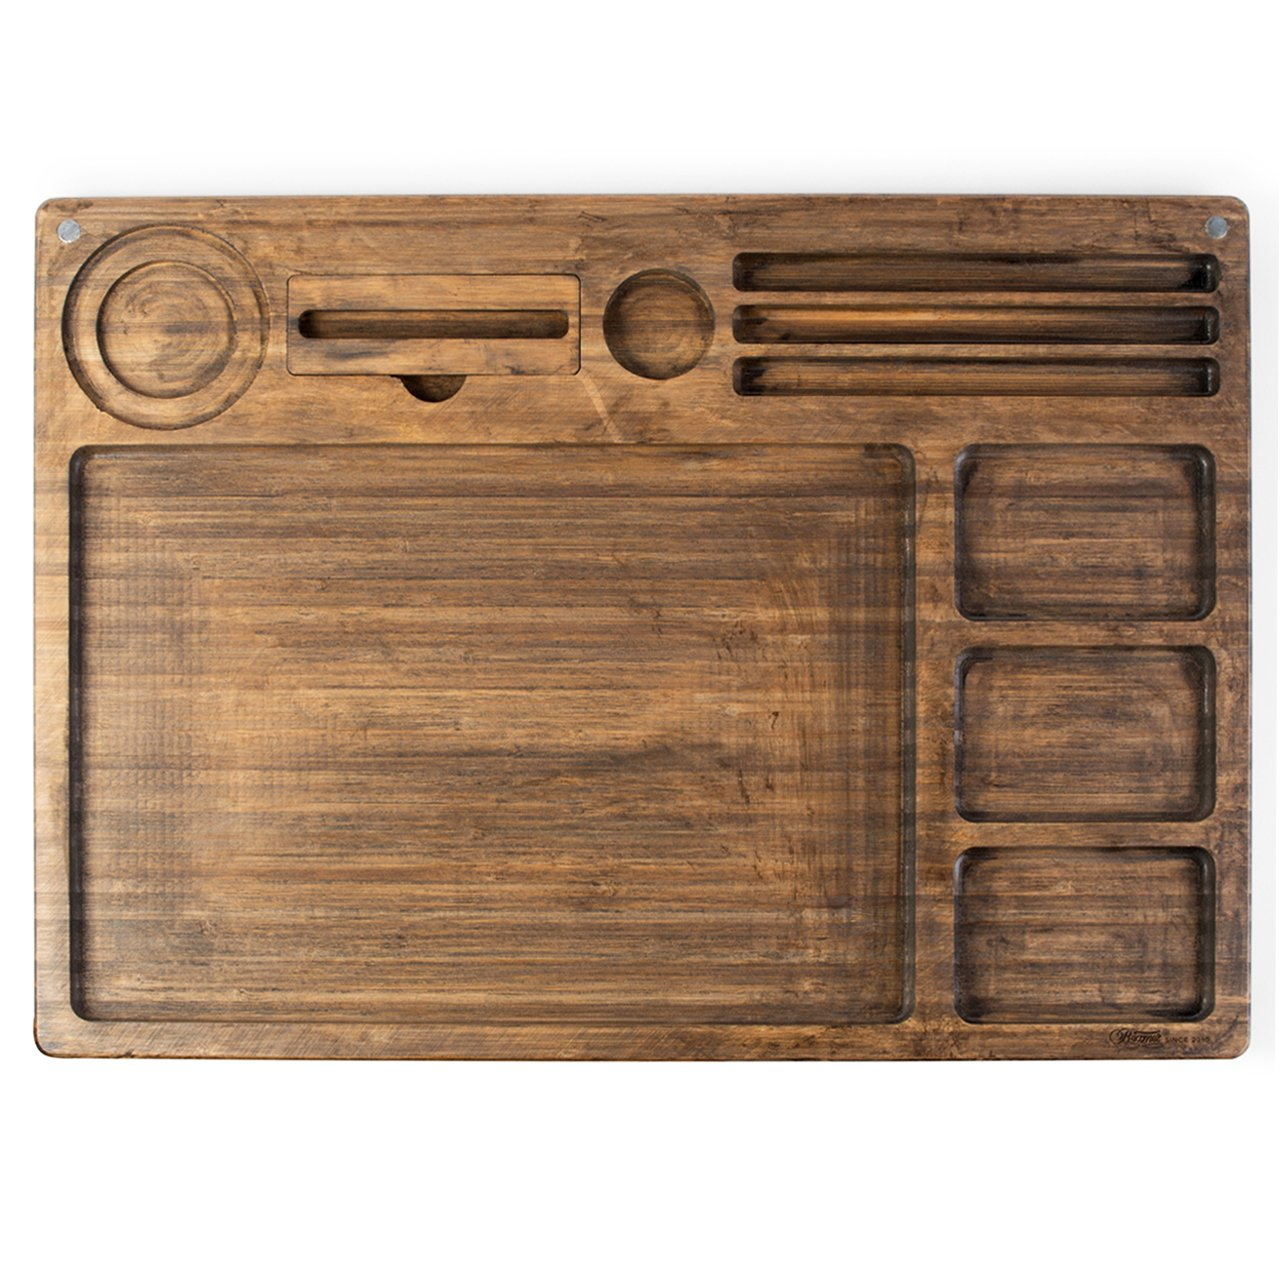 Beamer Goliath All In One Natural Bamboo Rolling Tray - Original Finish - 21 X 15 inch